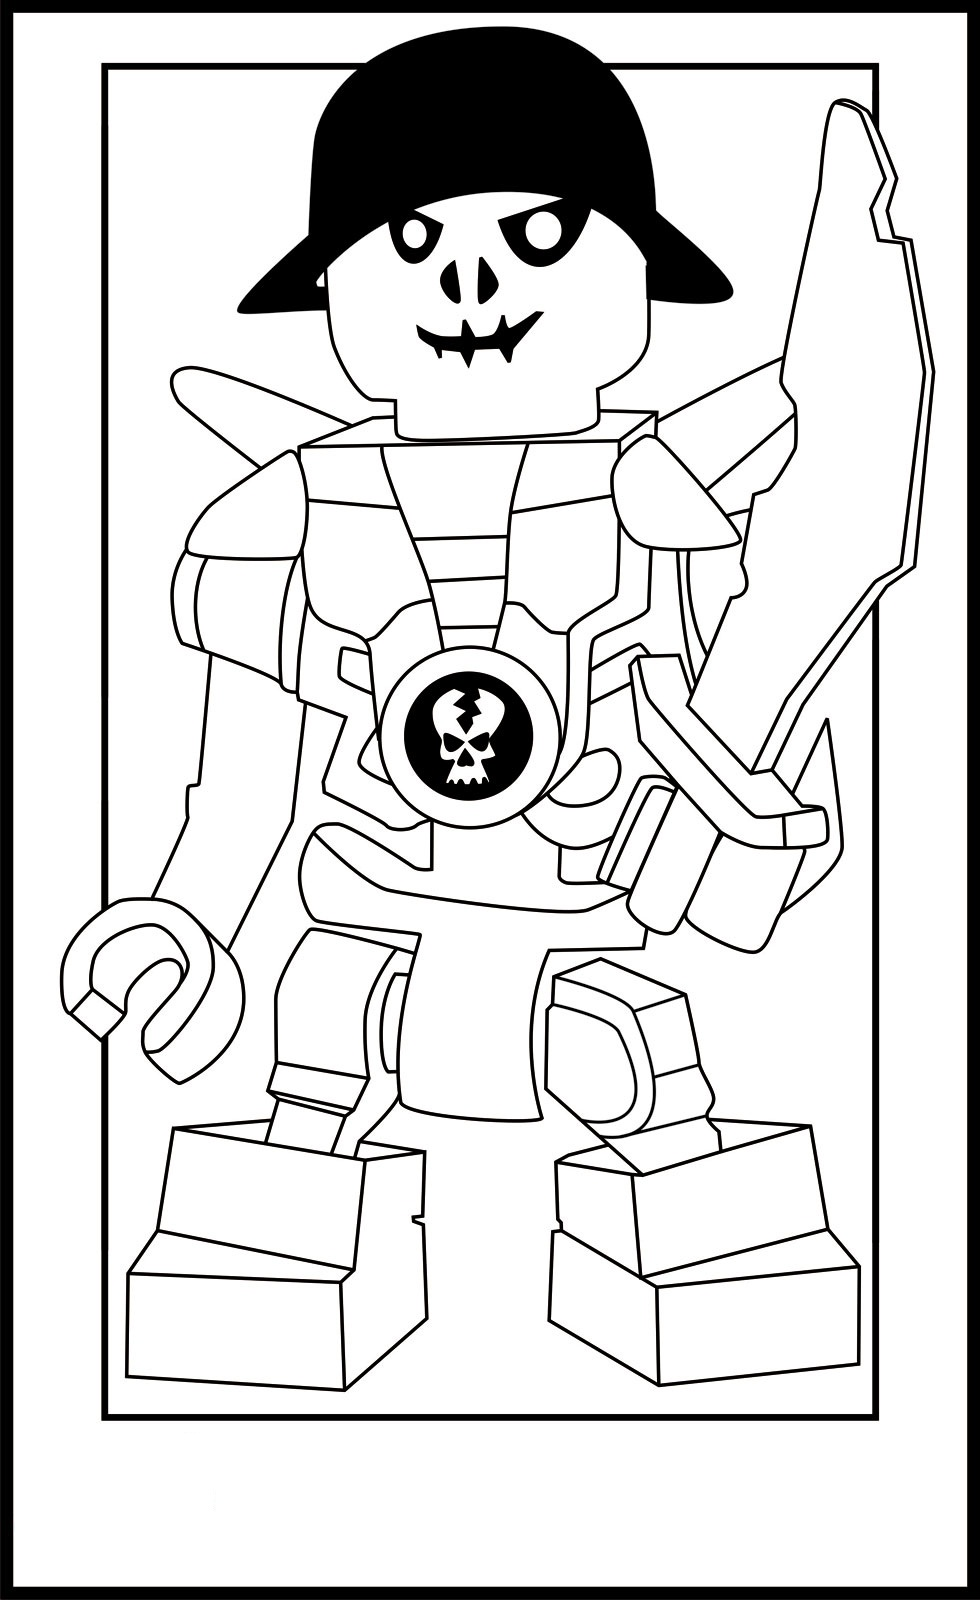 Image Result For Ninjago Coloring Pages Free Printable